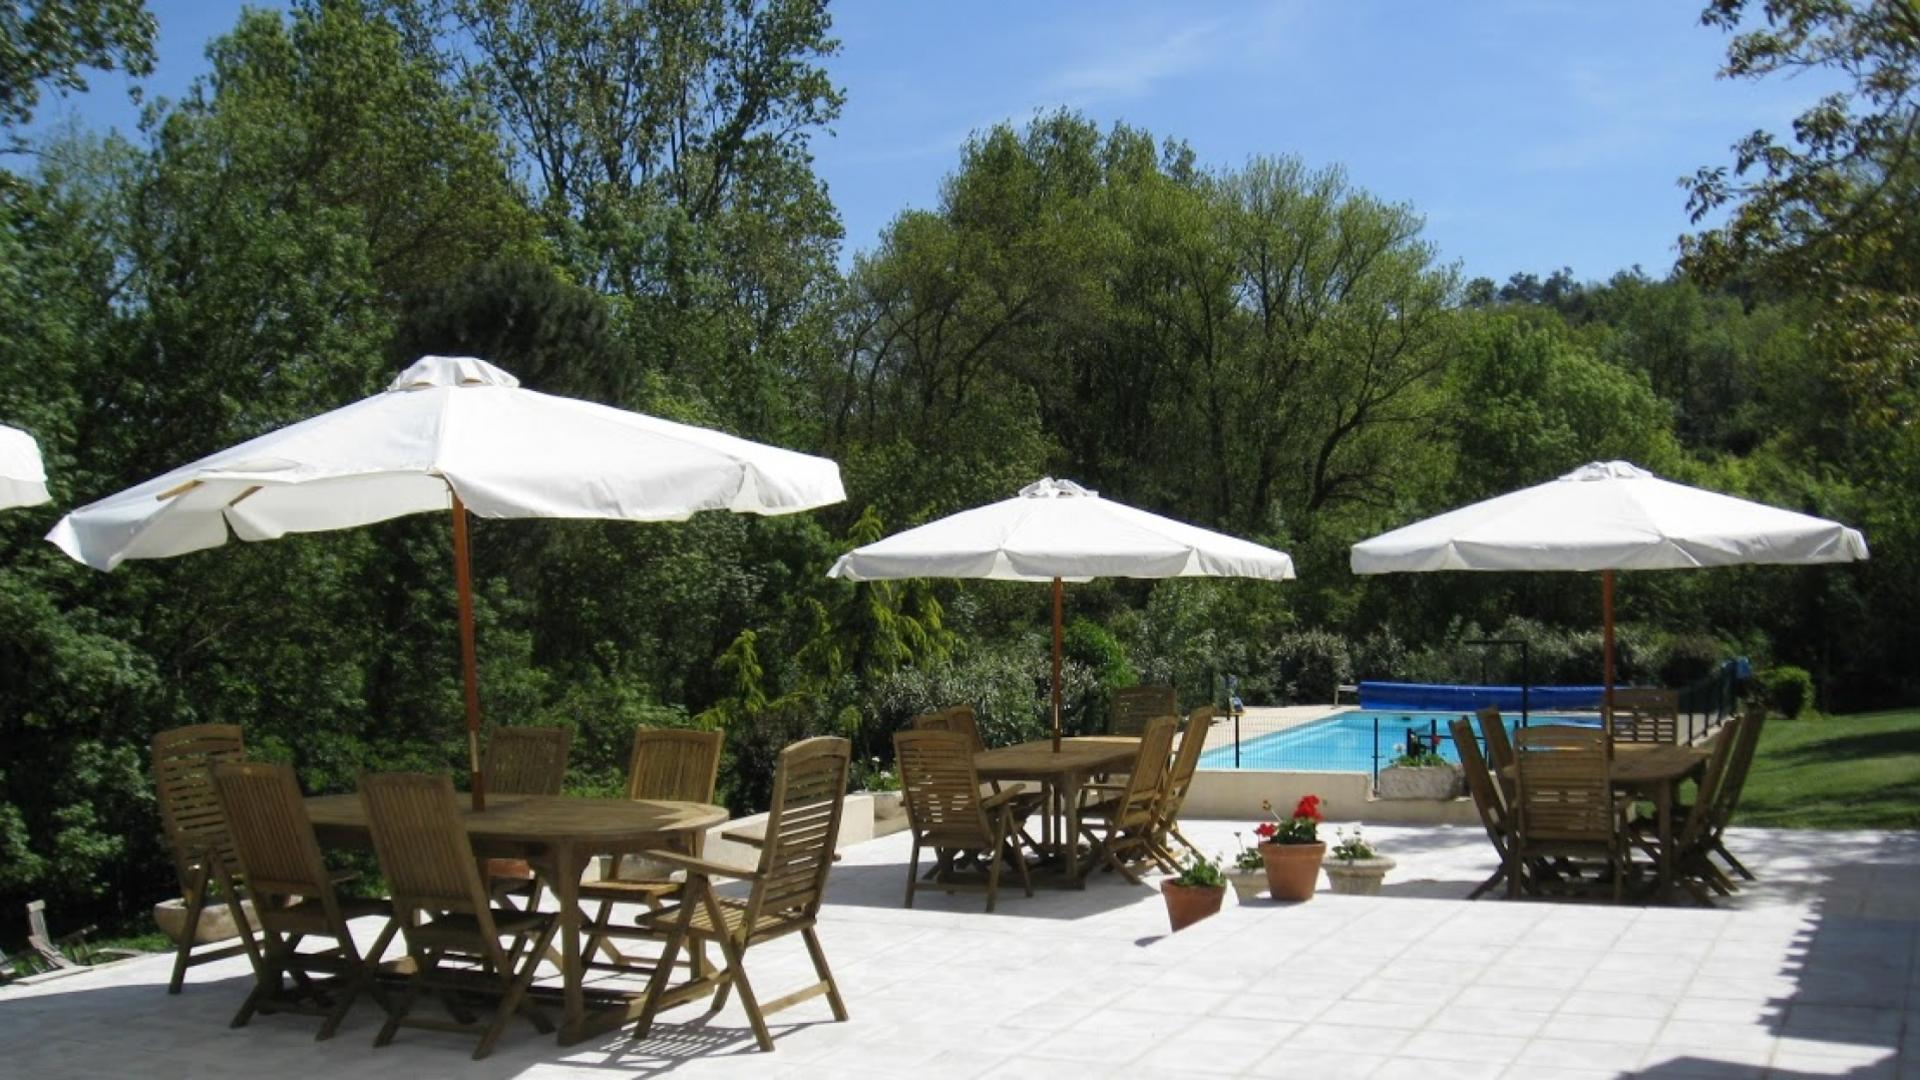 2 Bedroom Cottage/shared facilities in Languedoc-Roussillon, France